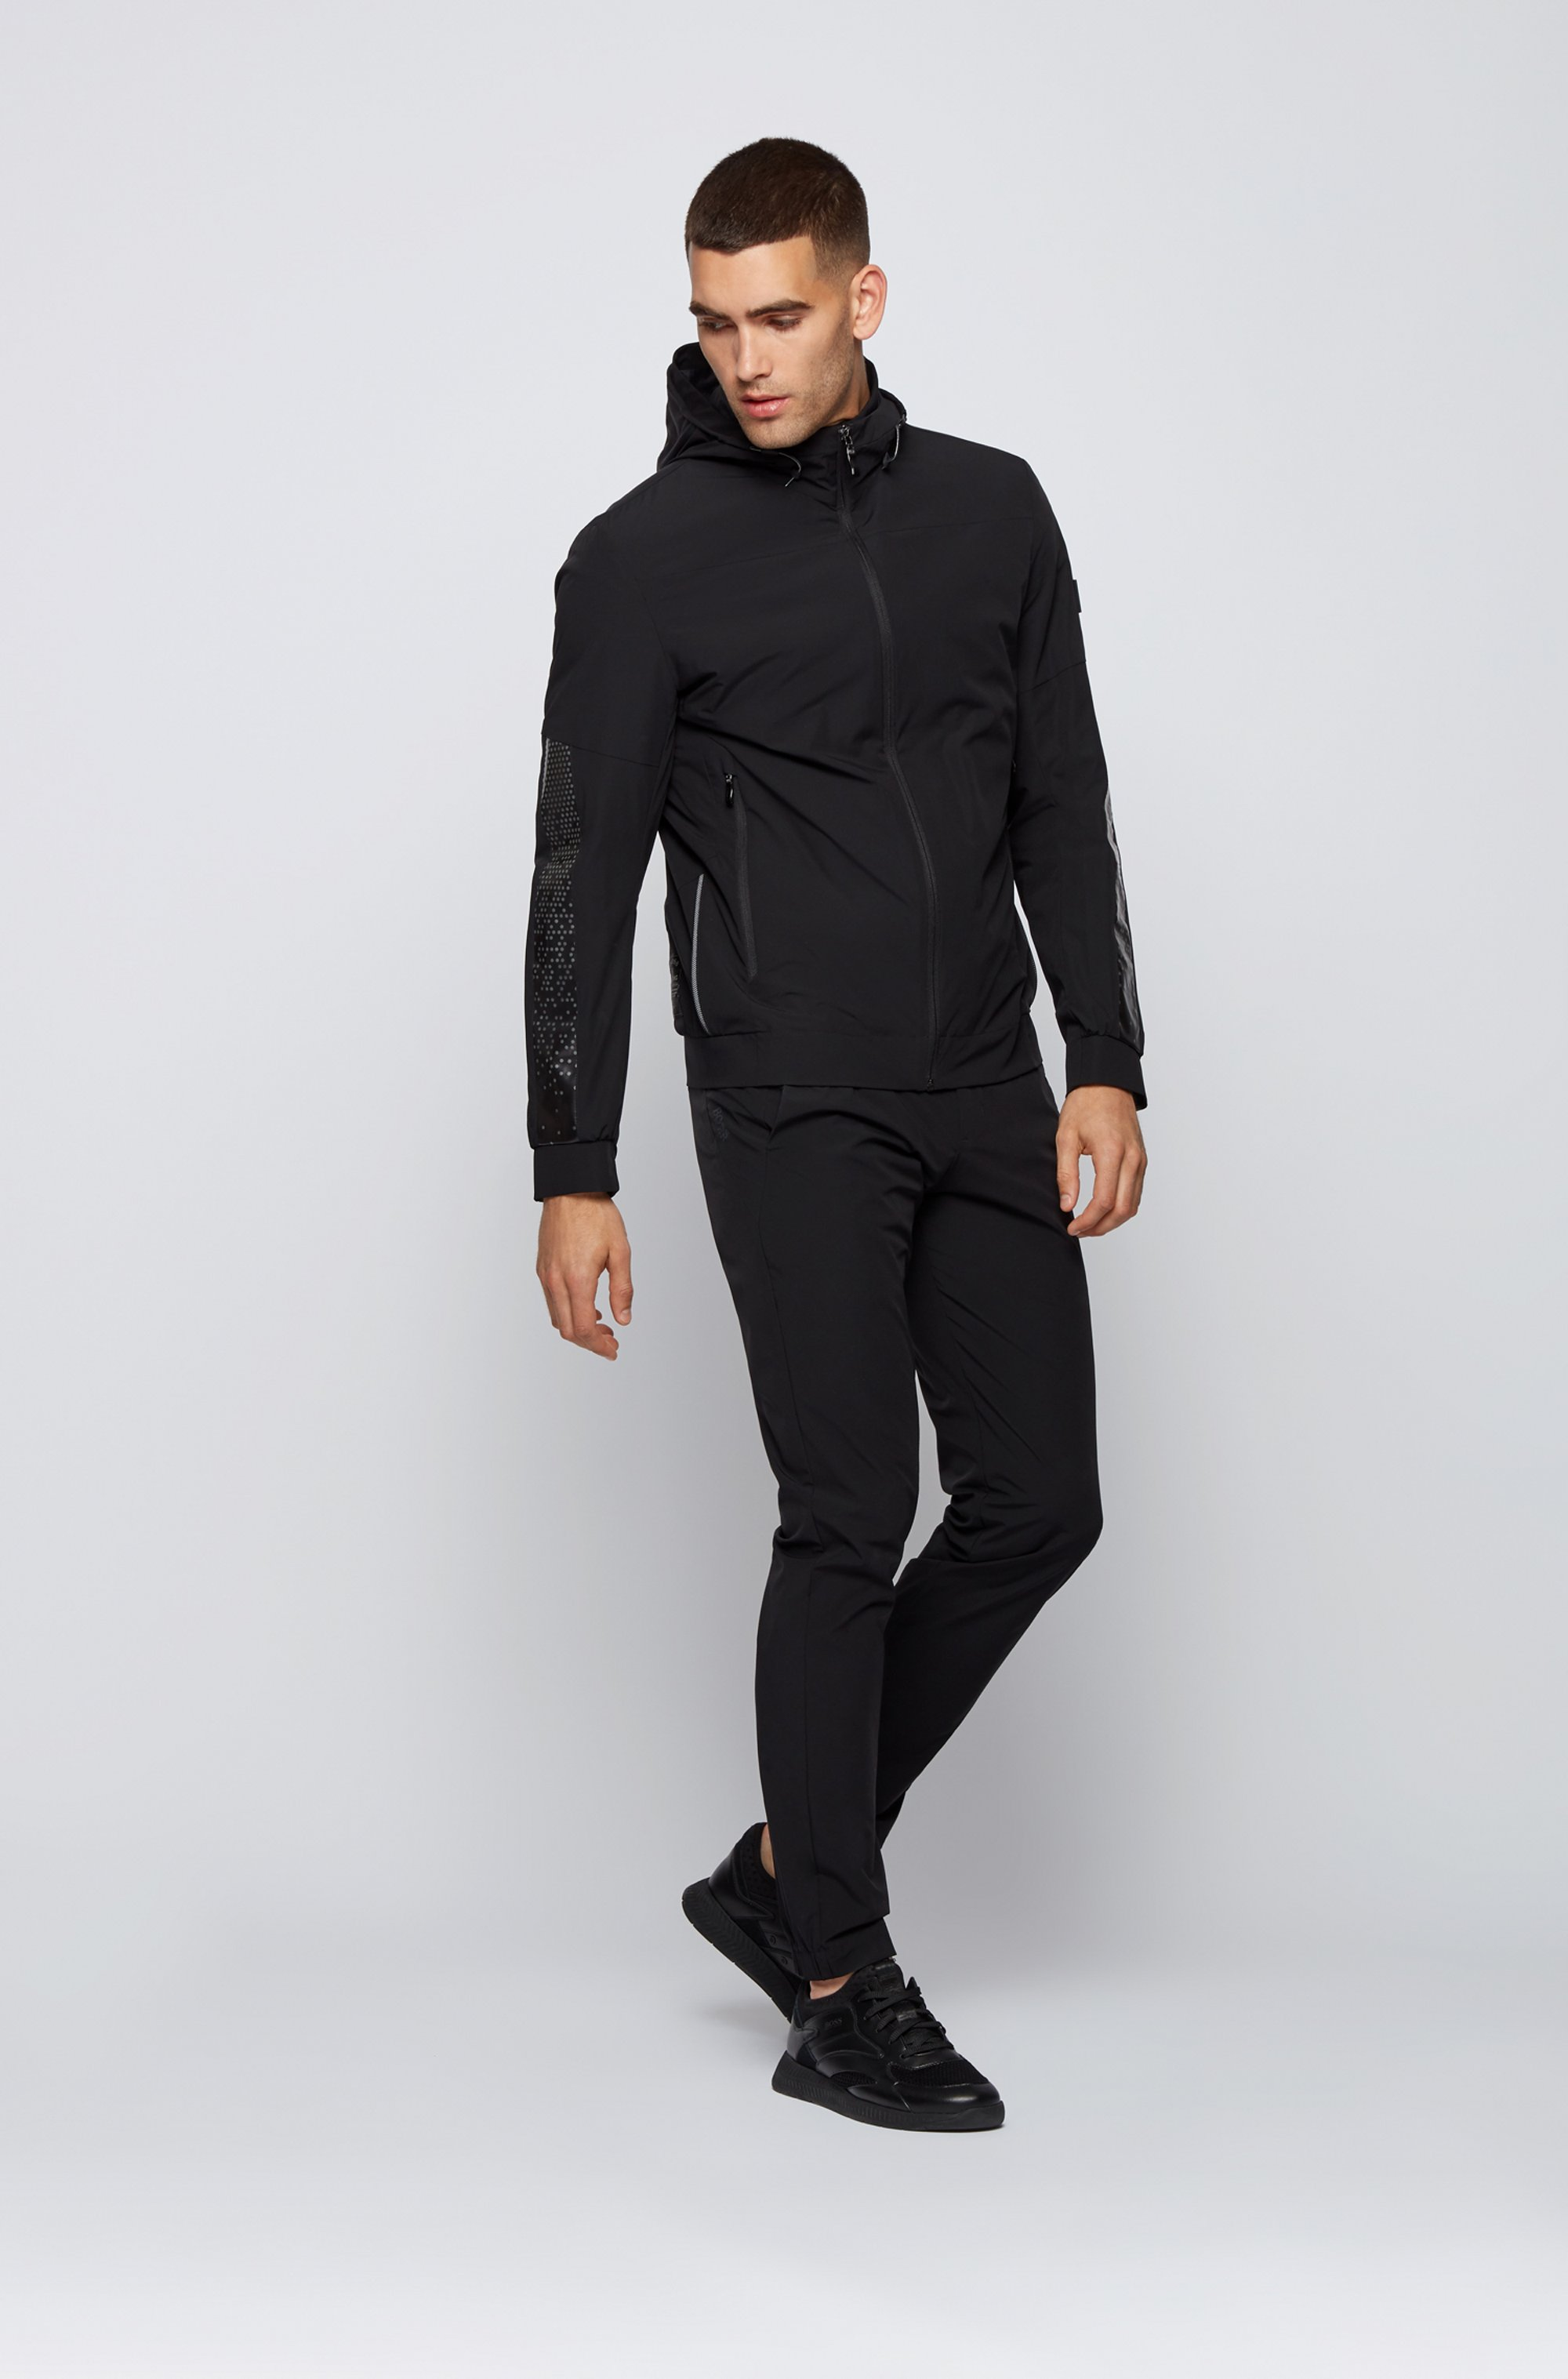 Regular-fit water-repellent jacket with reflective detailing